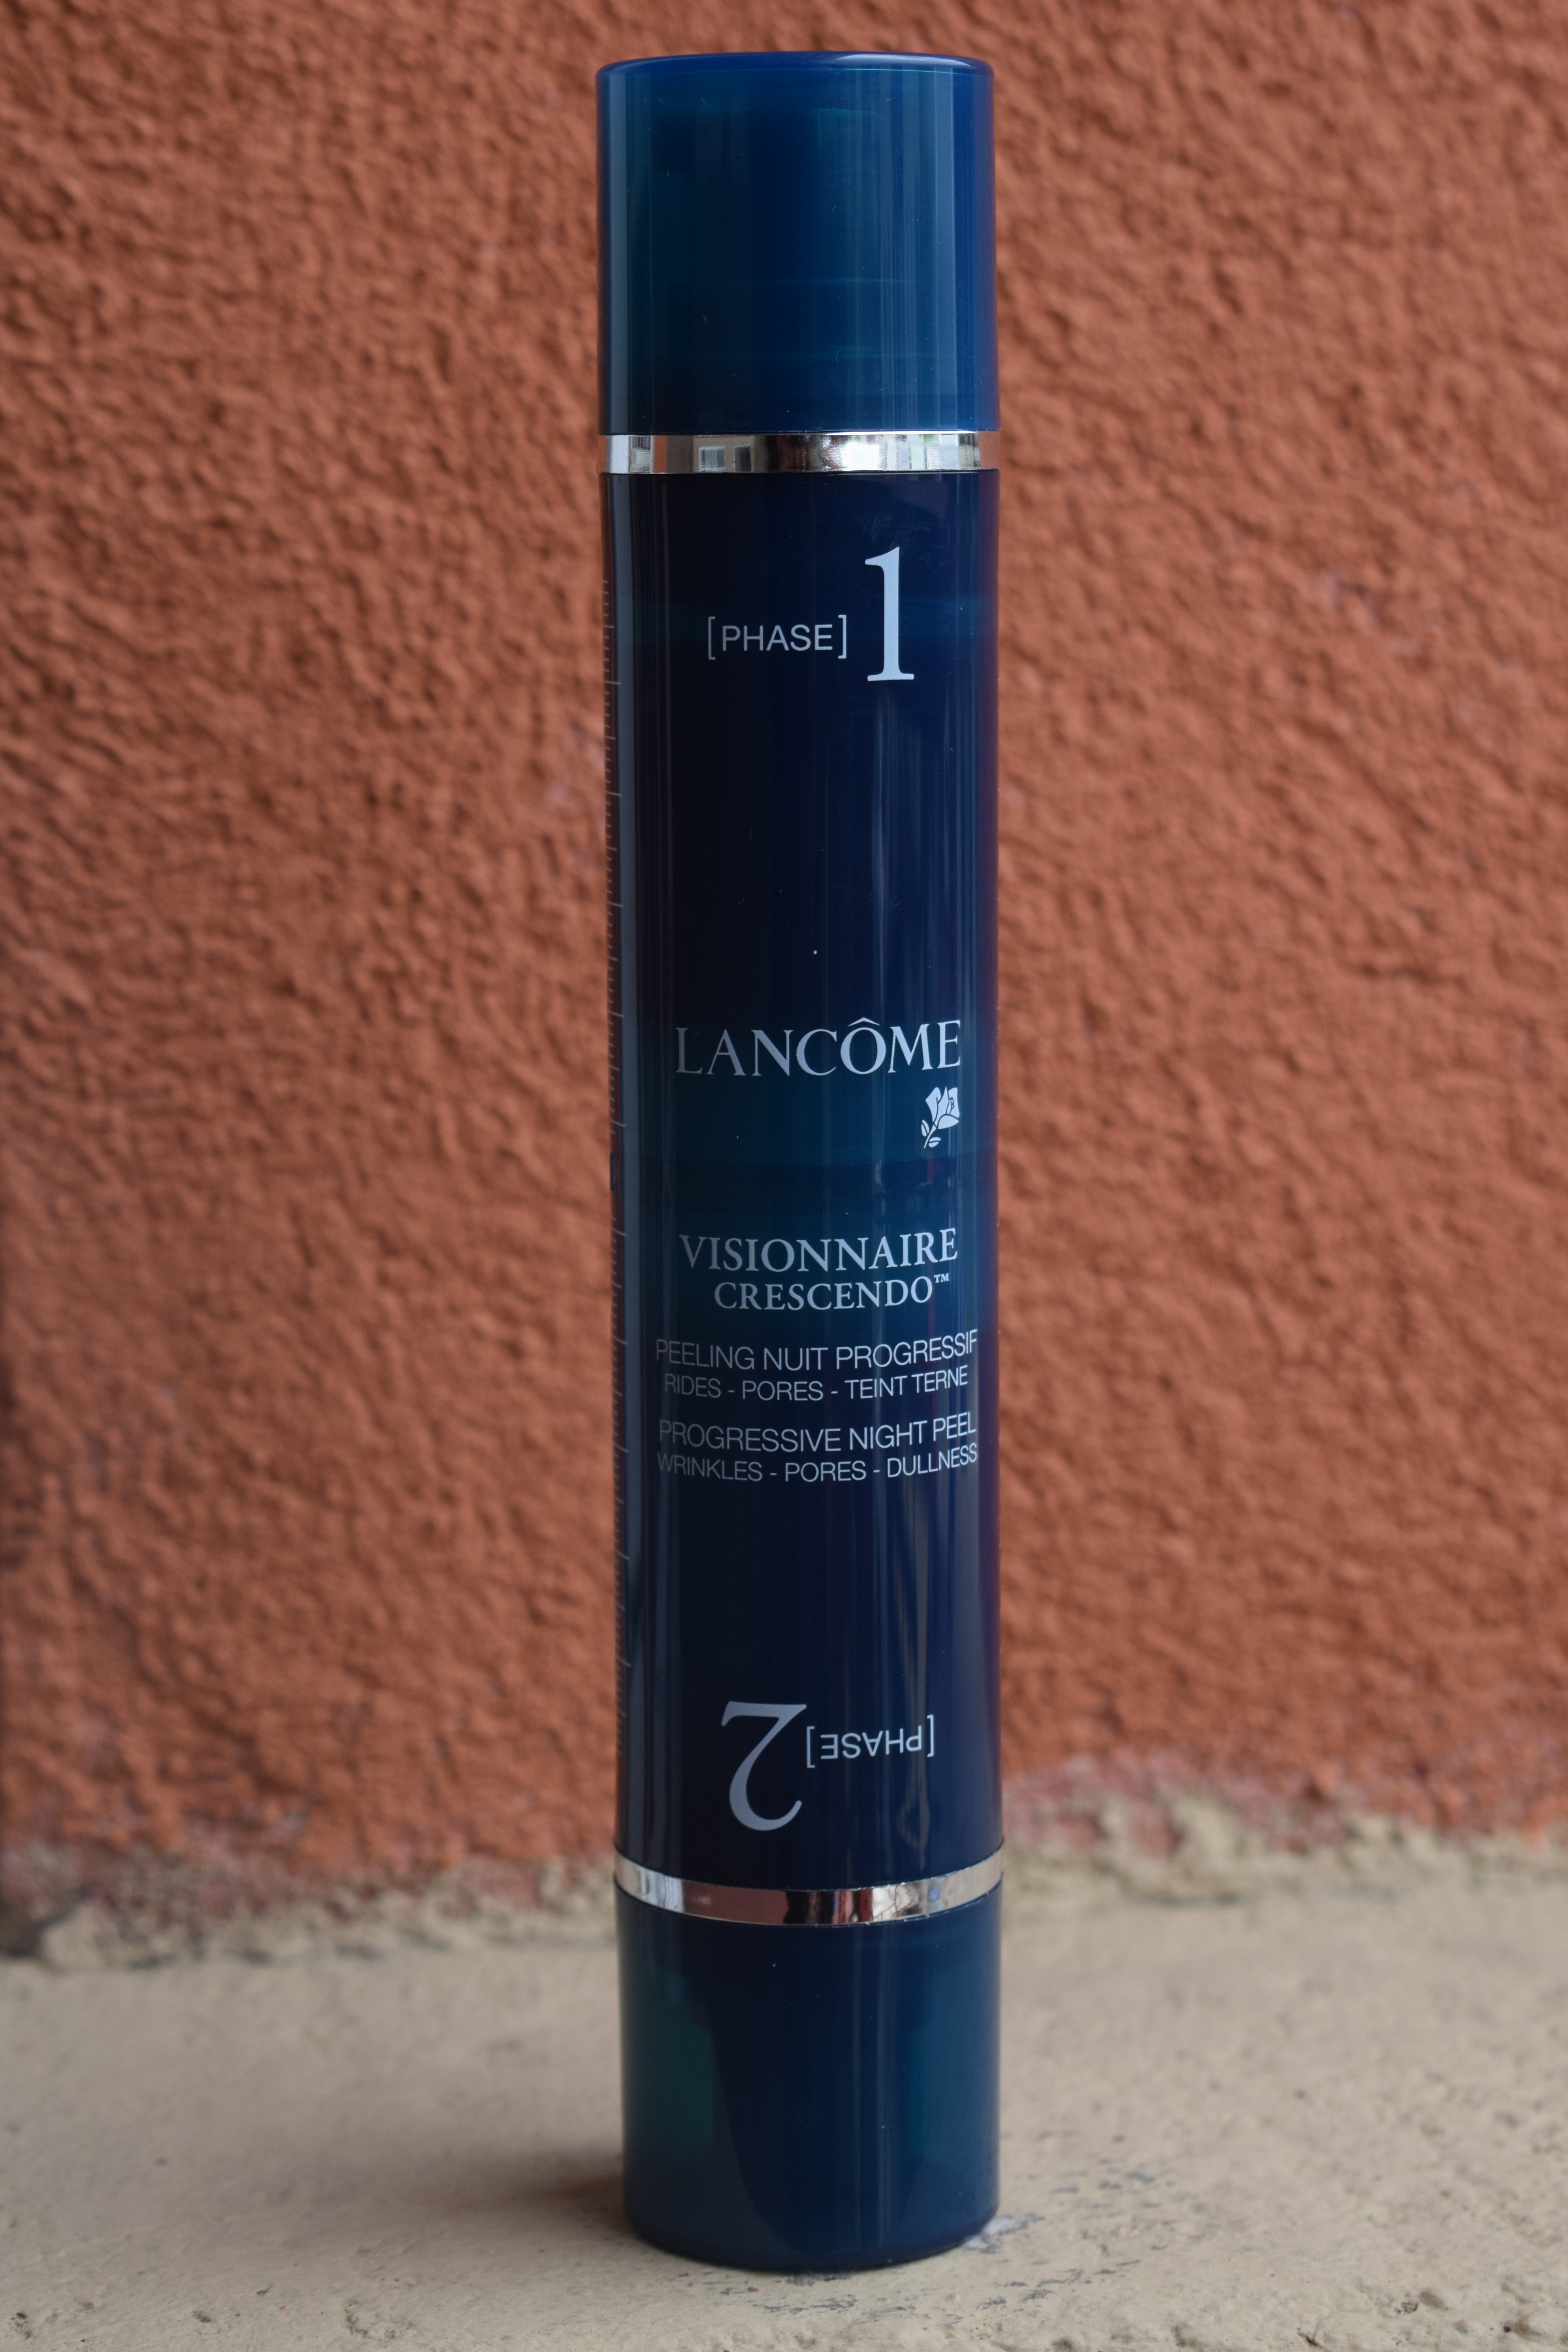 Lancôme Visionnaire Crescendo Progressive Night Peel